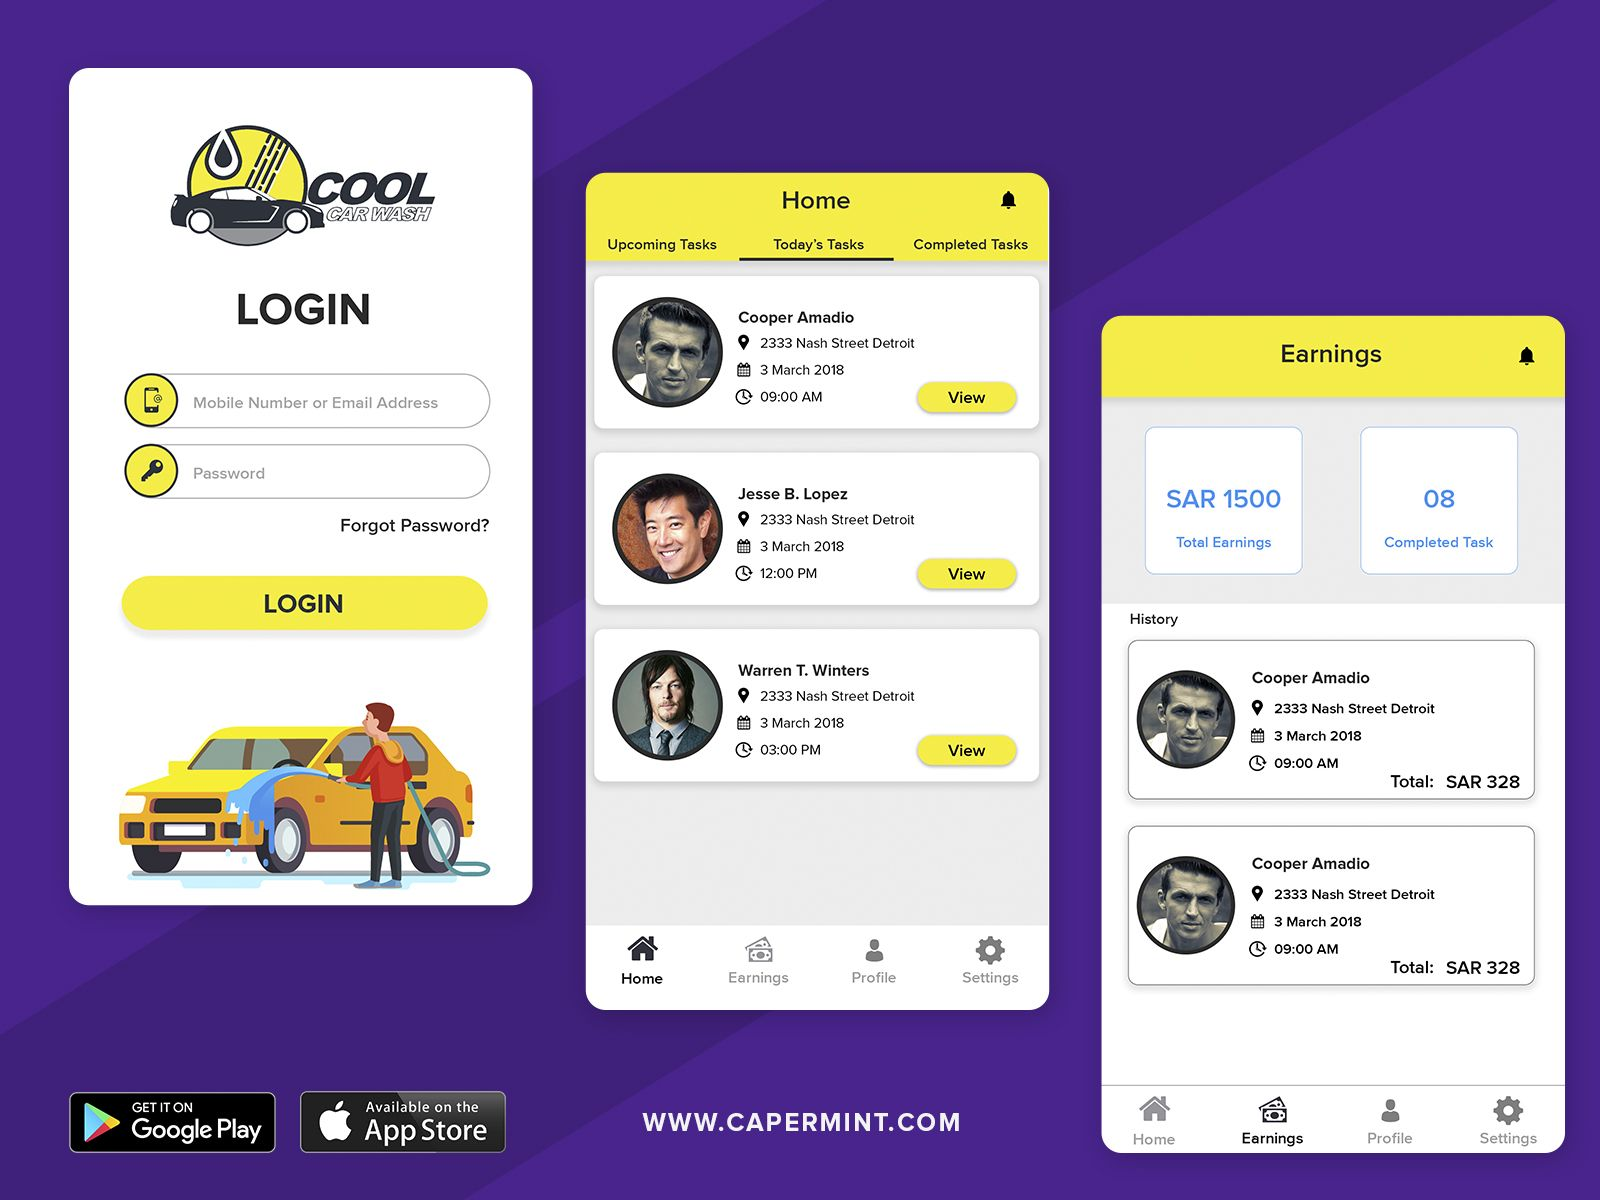 Hello Guys I Would Like To Show You Our New App Cool Car Wash Cool Car Wash Is A Professional Mobile C Car Wash Mobile App Development App Development